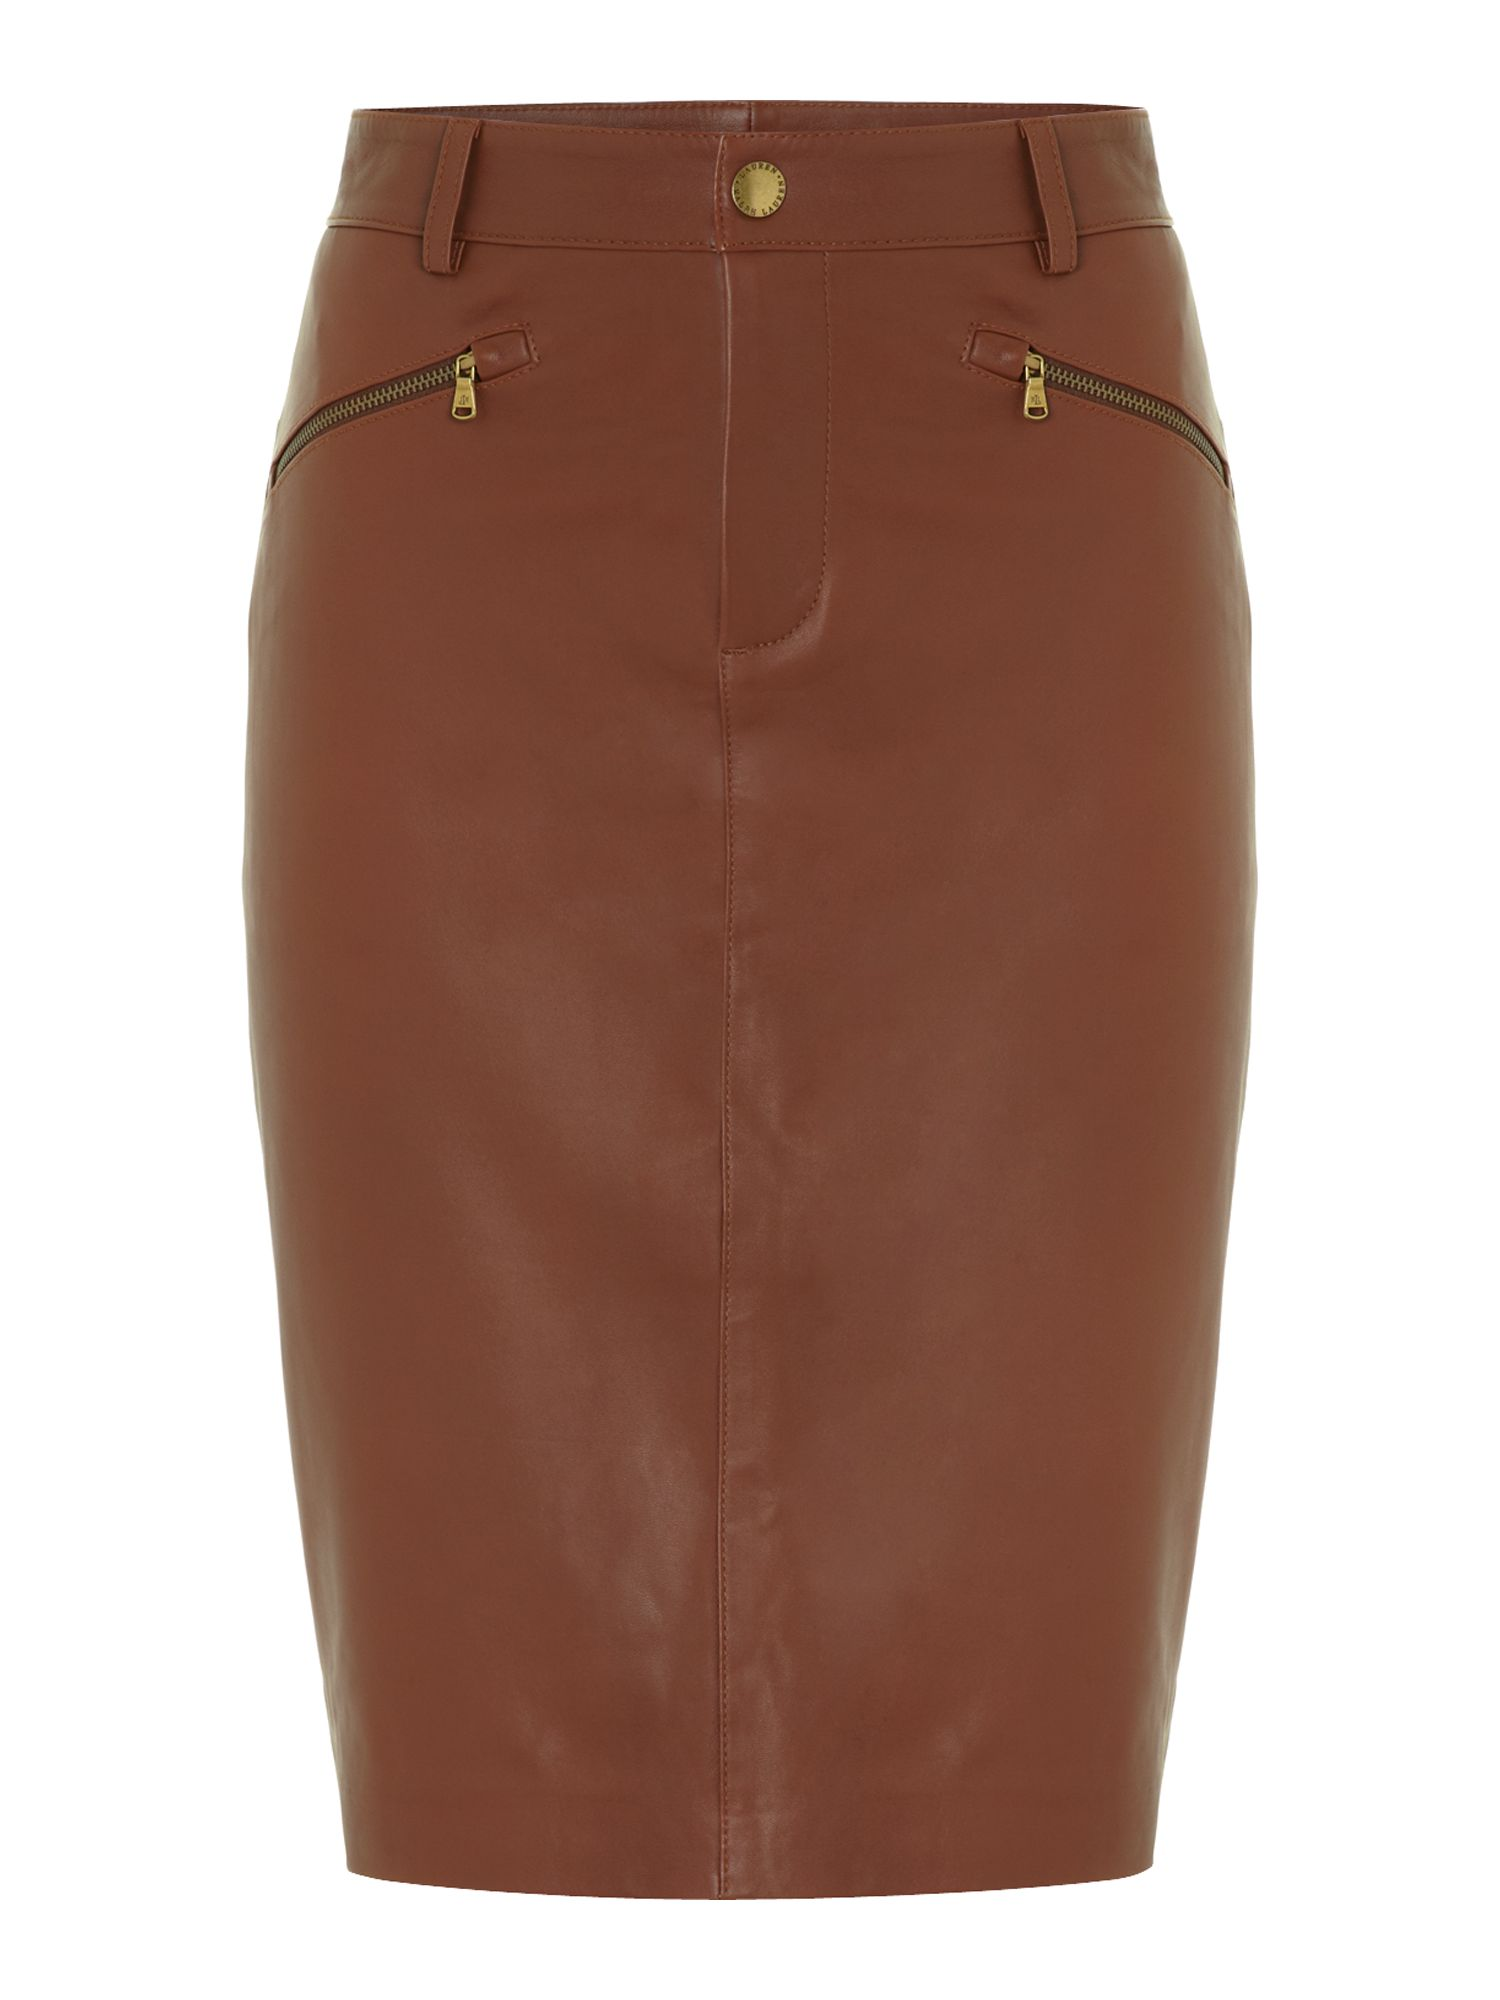 Pencil skirt with tan stockings 10